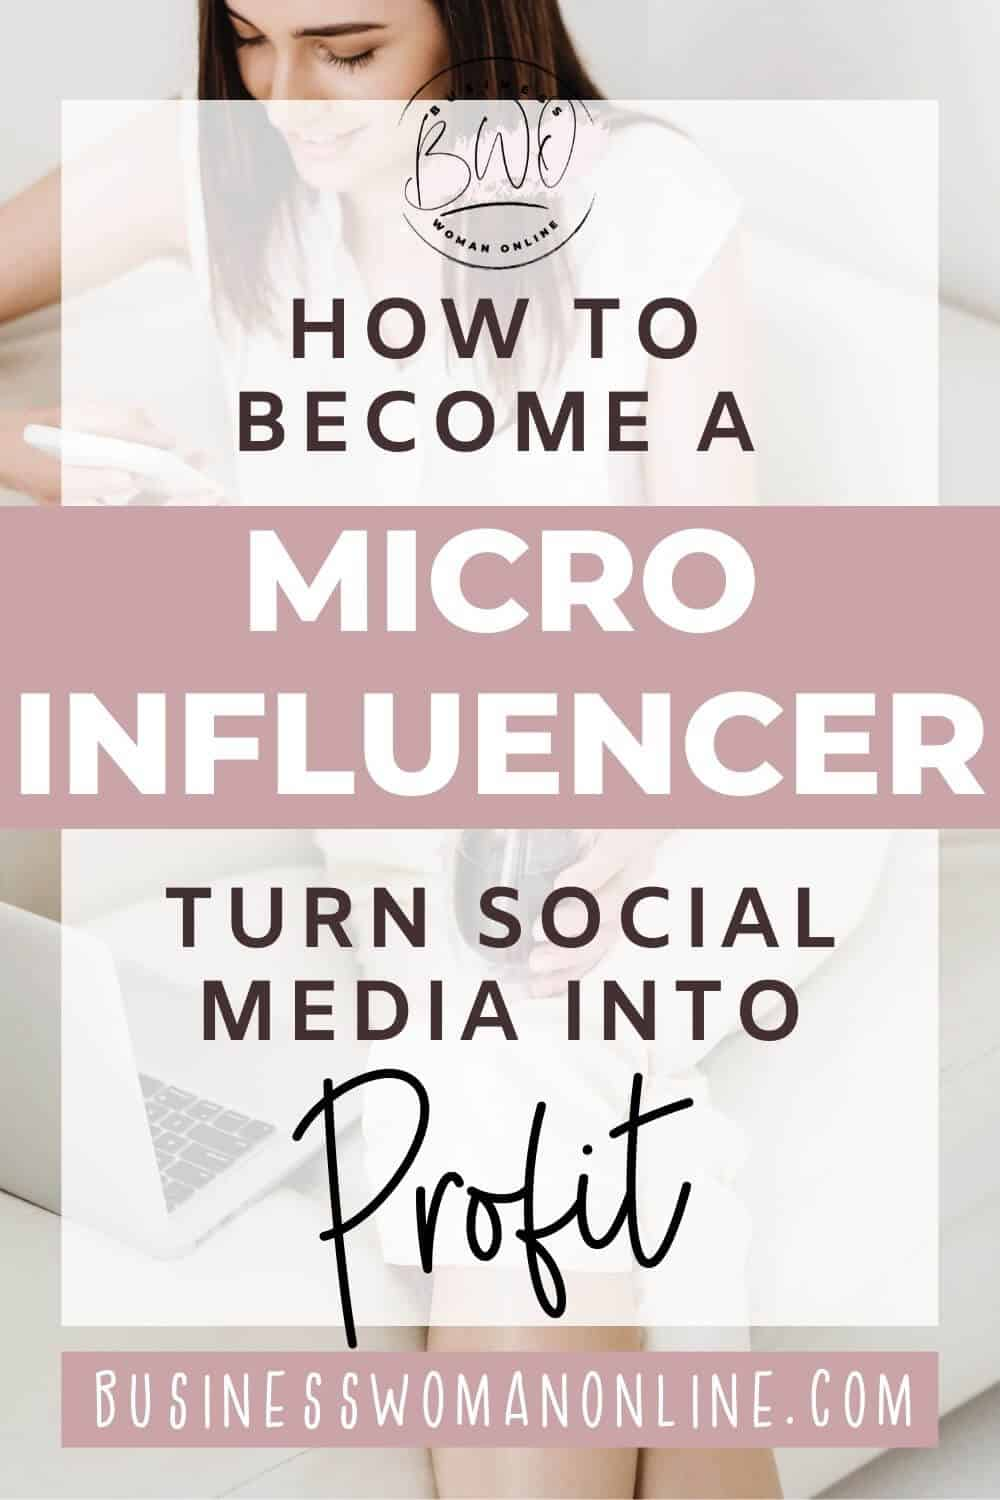 how to become a micro influencer 2021